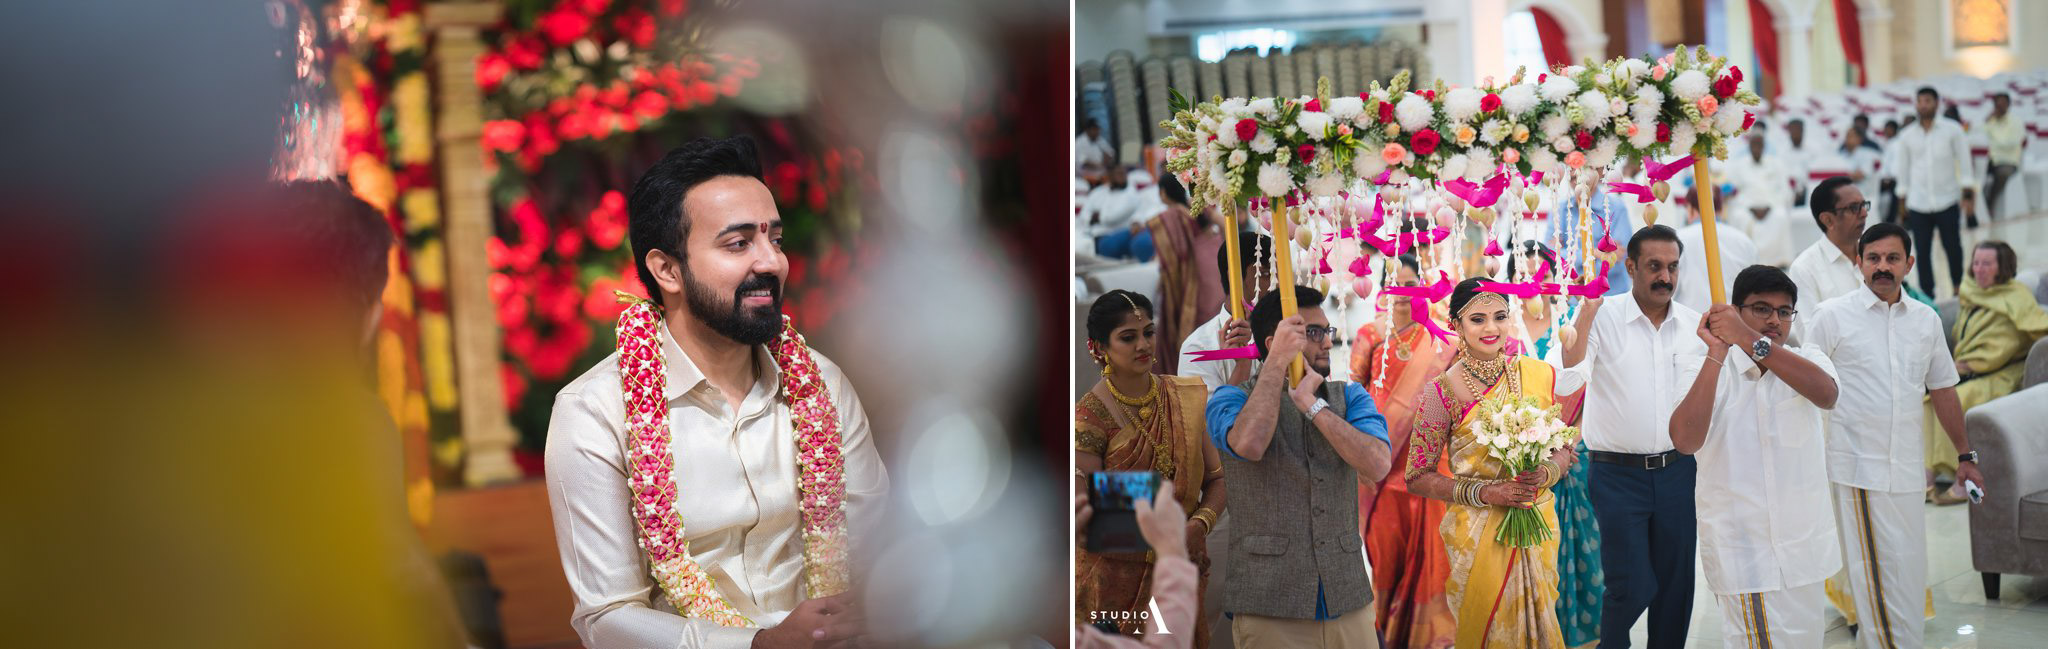 best-candid-wedding-photography-studioa-chennai-21